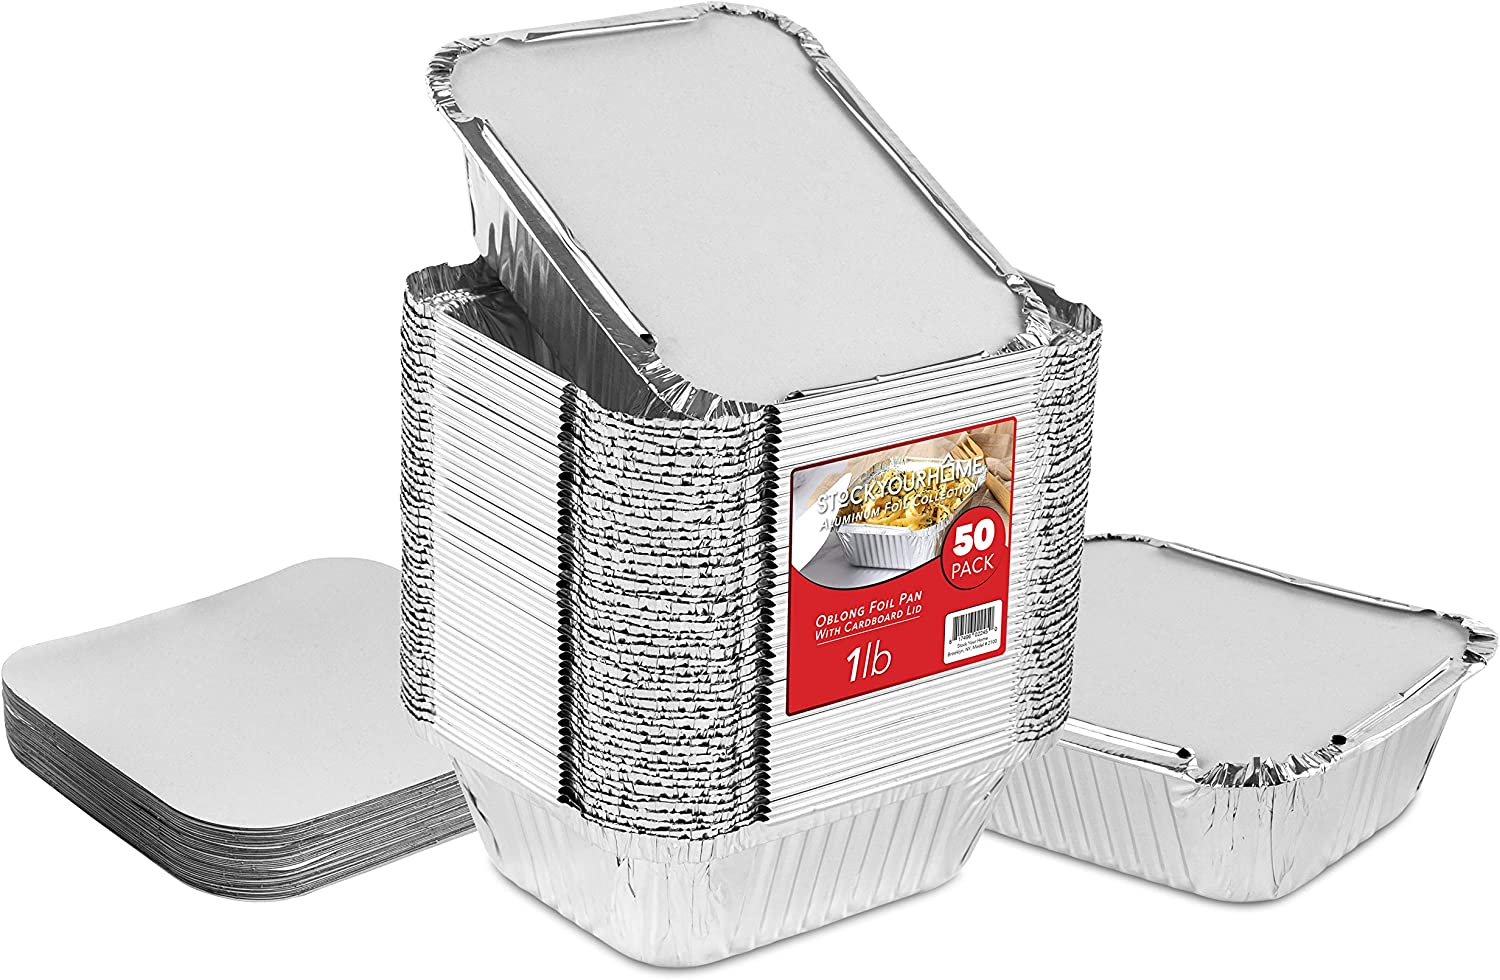 "50 Pack Disposable Takeout Containers with Foil Lids – 1 Lb Capacity Aluminum Foil To Go Food Containers – Secure Lid to Lock in Freshness – Eco Friendly Recyclable Aluminum Pans – 4"" Inch Drip Pans"